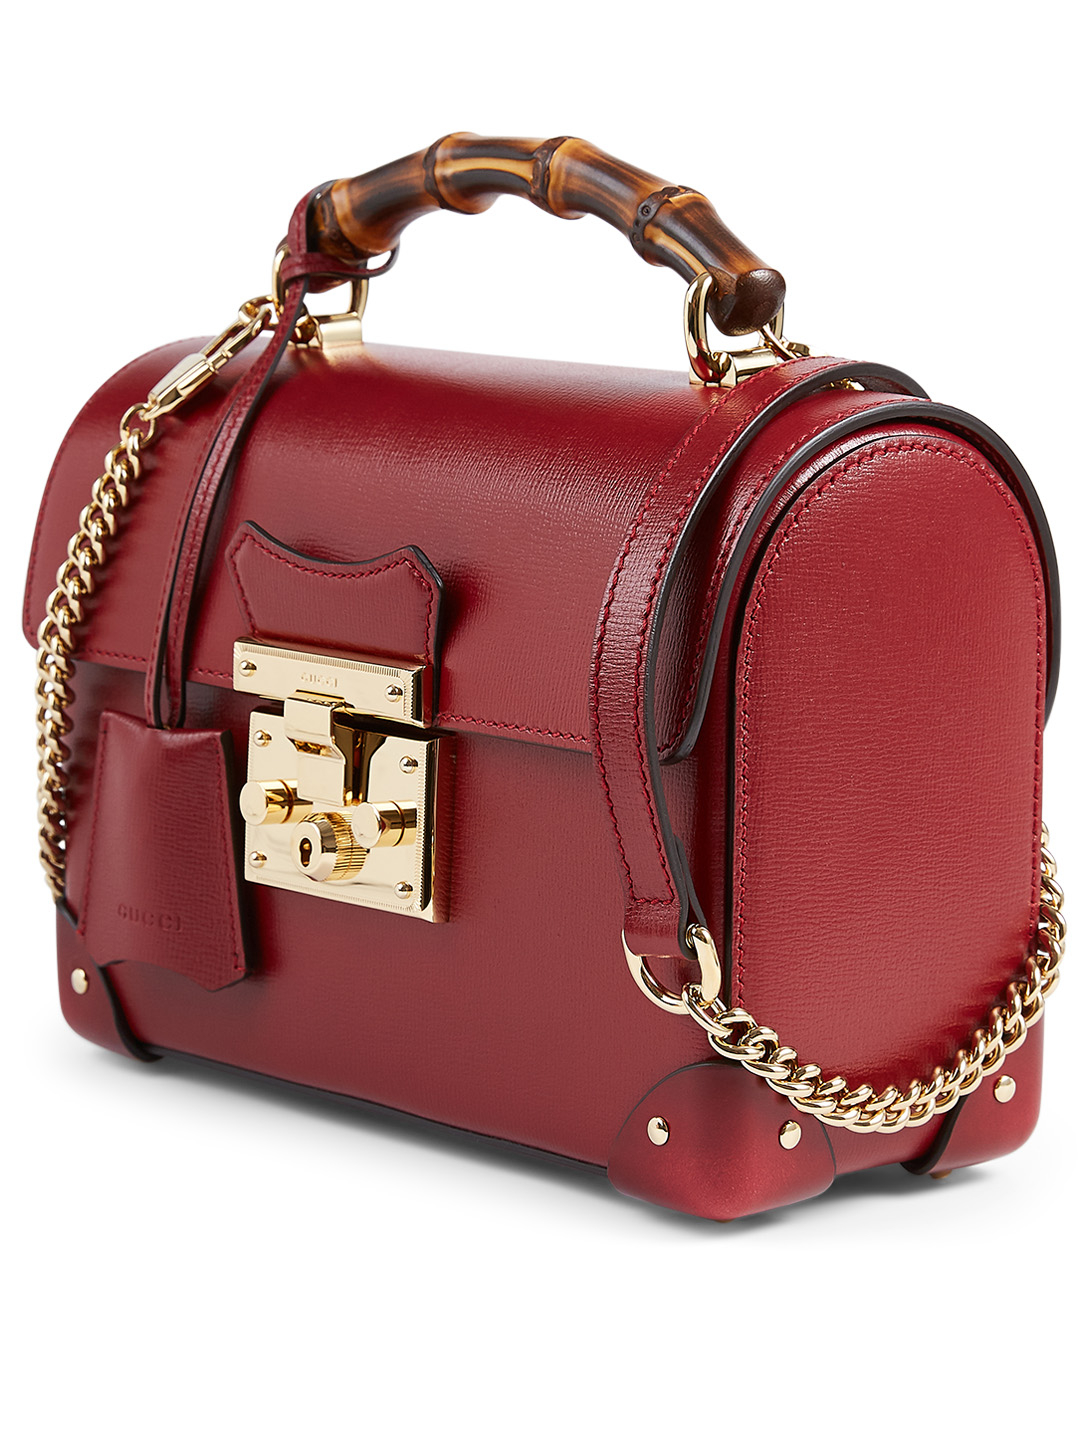 GUCCI Small Padlock Bamboo Leather Shoulder Bag Women's Red